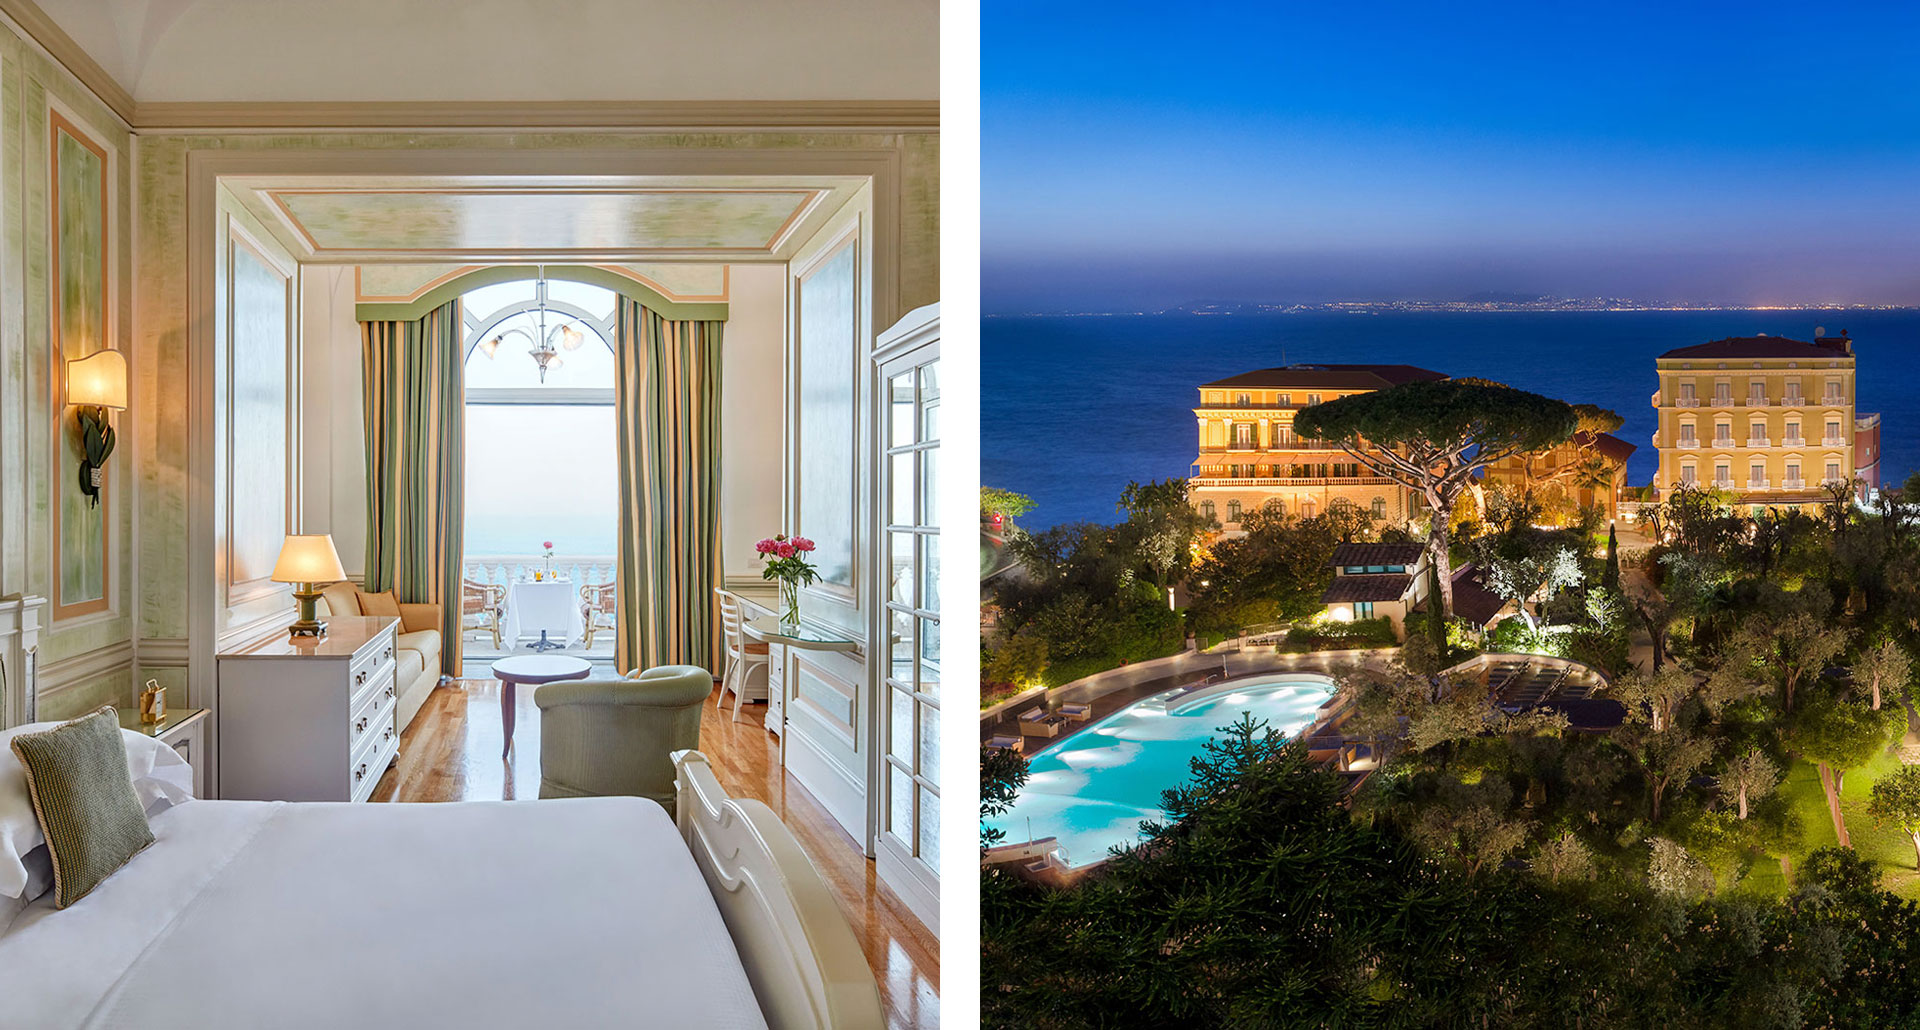 Grand Hotel Excelsior Vittoria - boutique hotel in Sorrento